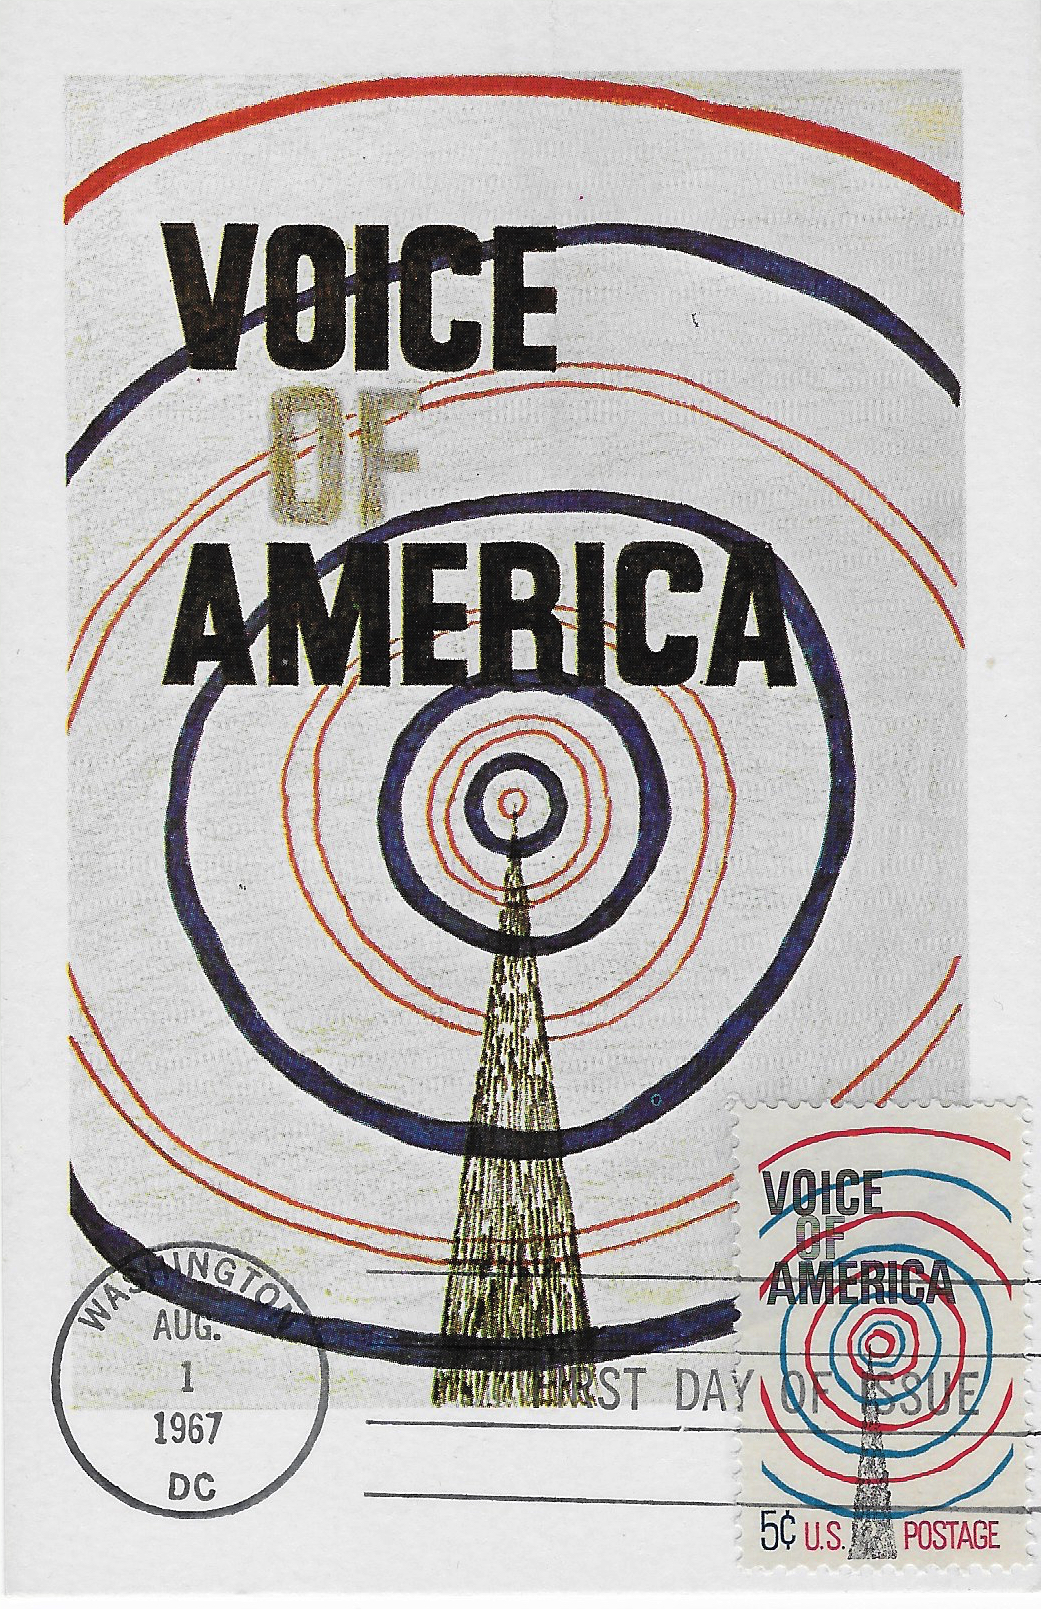 images 2 home office radio museum collection. The Voice Of America 25th Anniversary Stamp Ceremony Was Held At VOA Headquarters In Washington, DC On Tuesday, August 1, 1967. Images 2 Home Office Radio Museum Collection